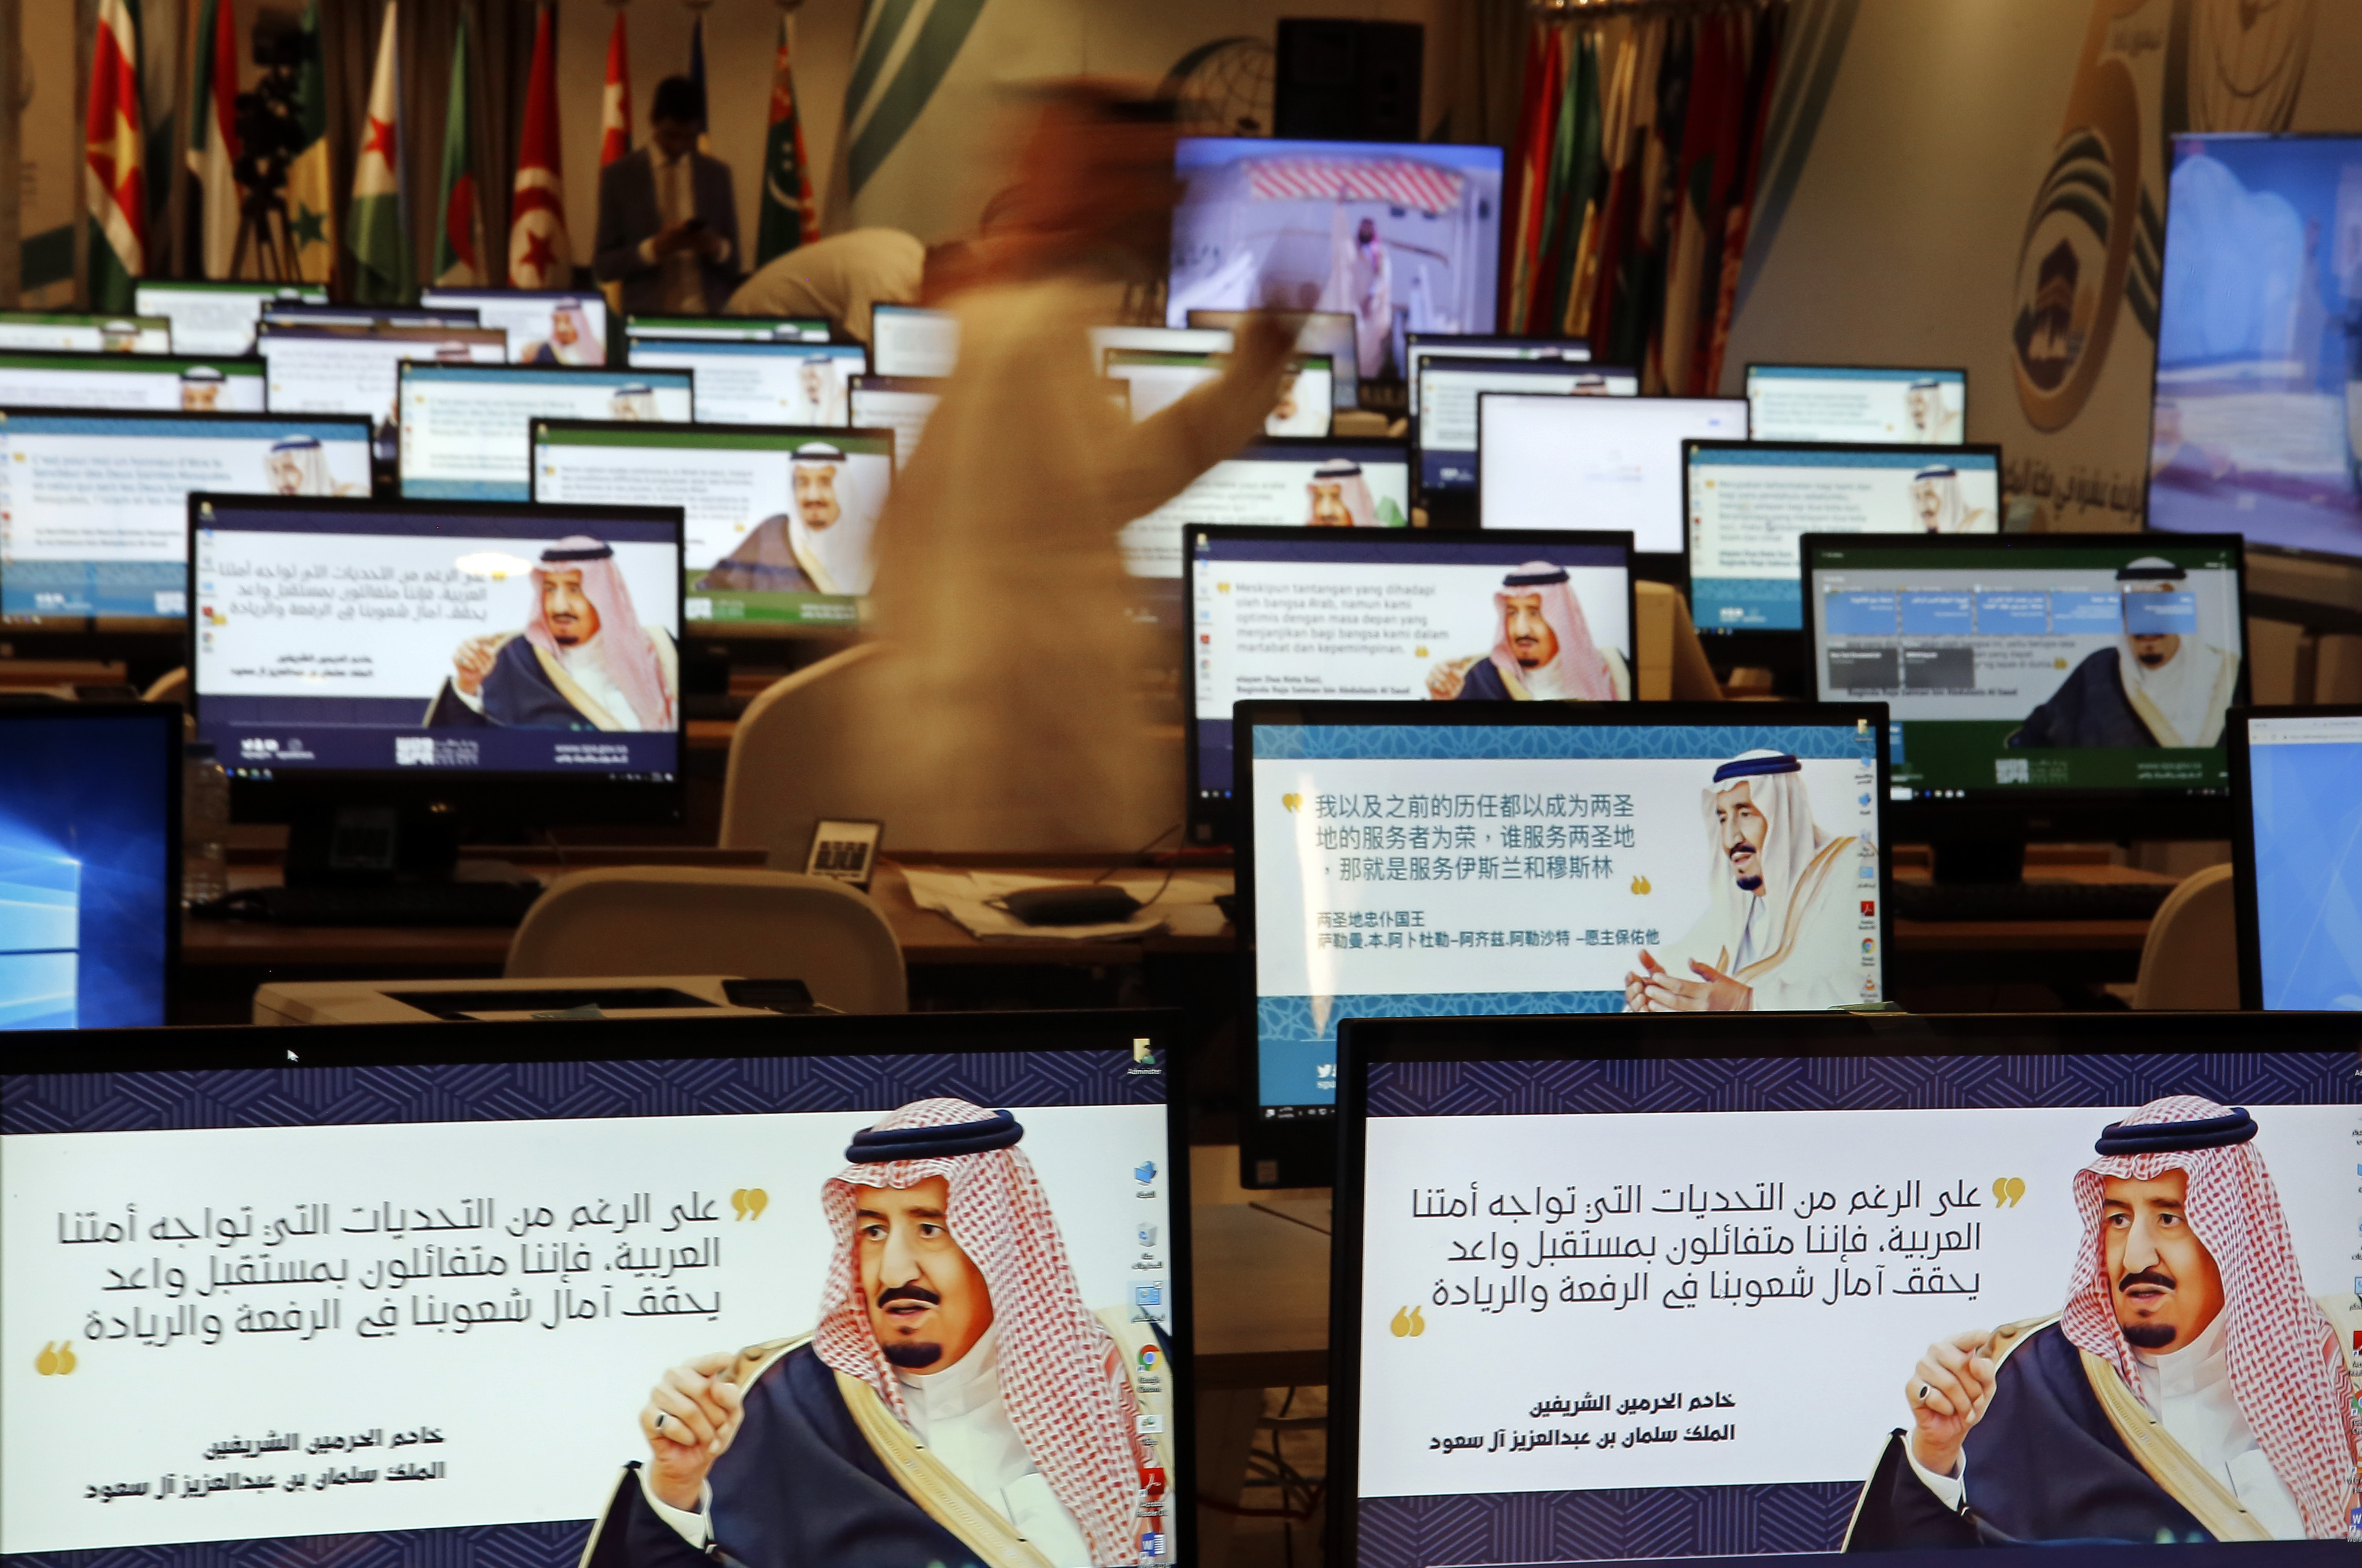 Screensavers showing King Salman are visible on computers at the press center for upcoming summits, in Mecca, Saudi Arabia, May 30, 2019.